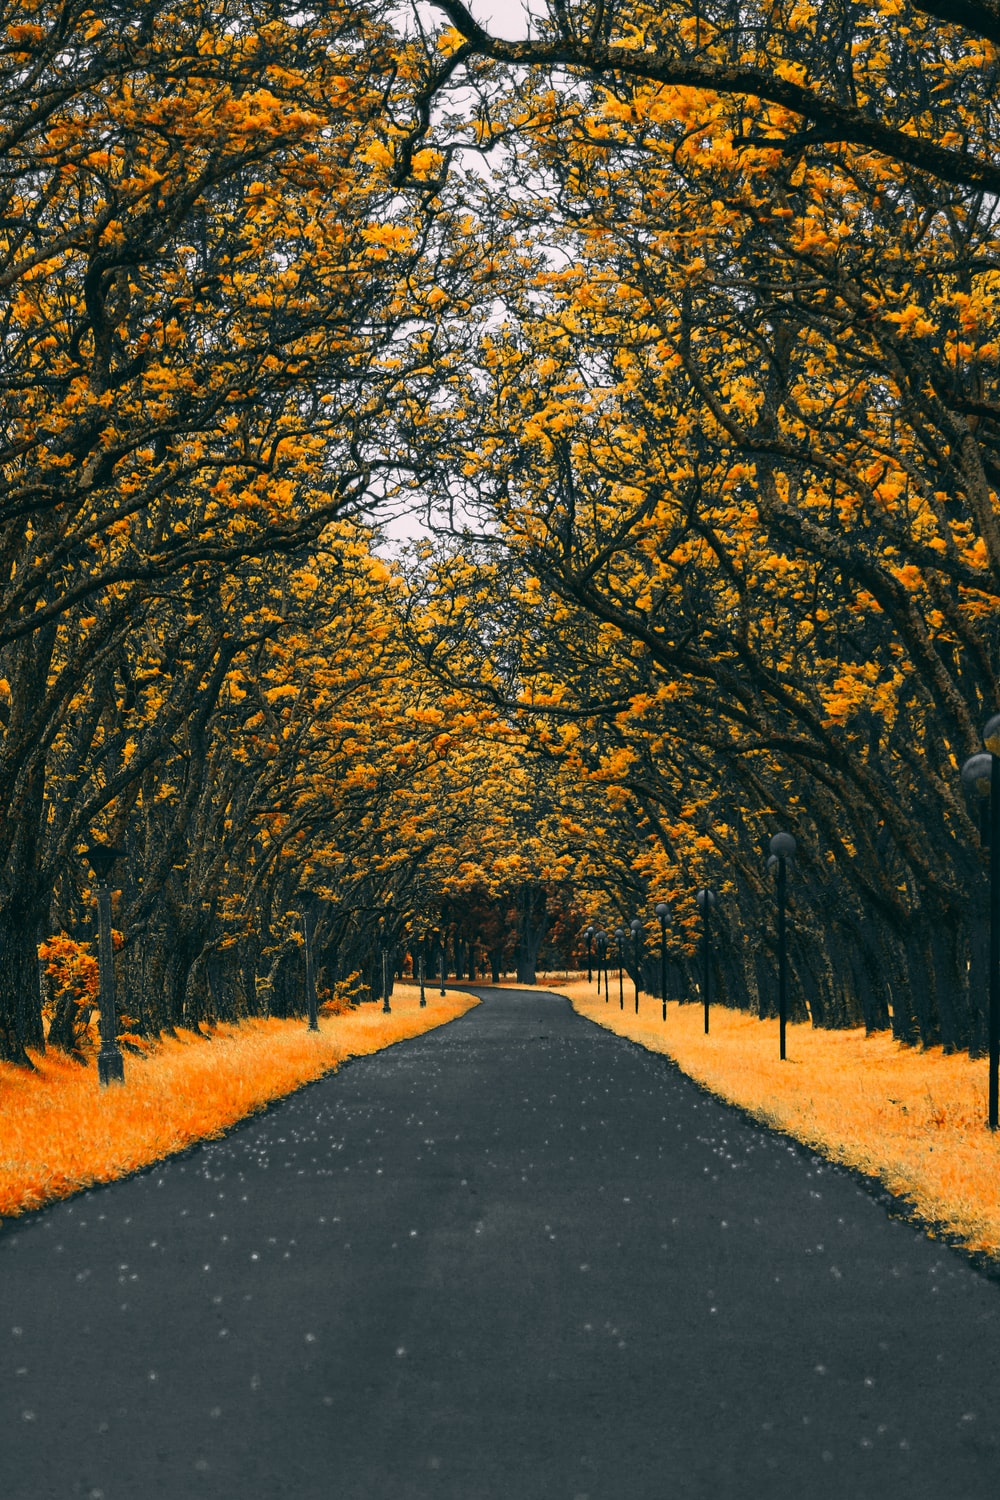 paved road between trees